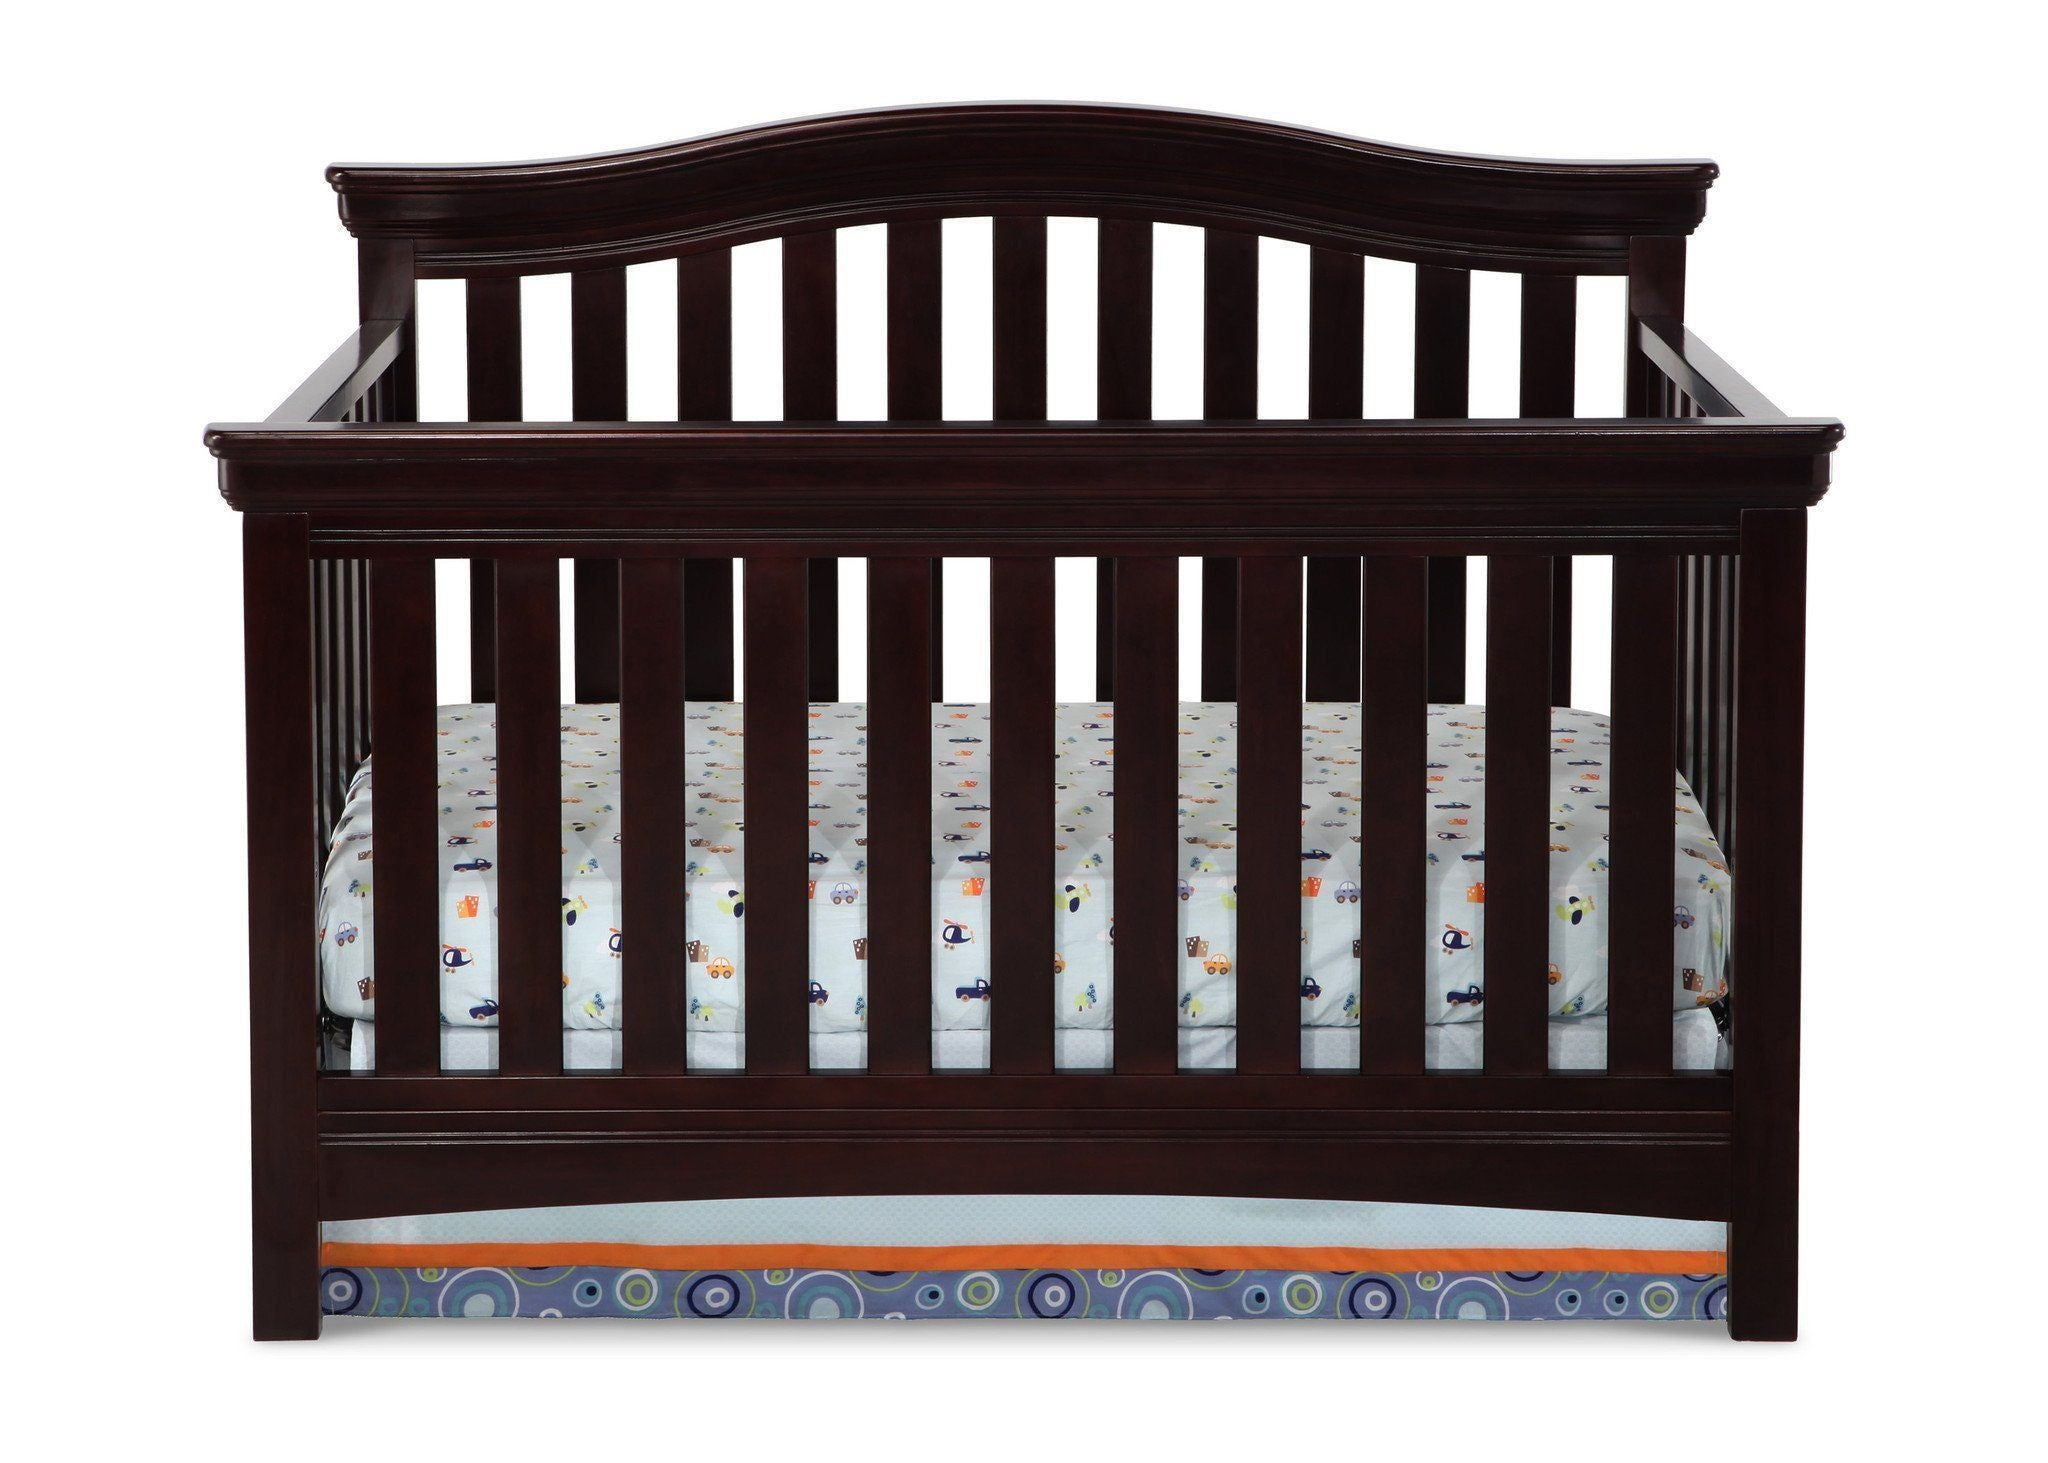 Delta Children Dark Chocolate (207) Bennington Curved 4-in-1 Crib Front View b1b